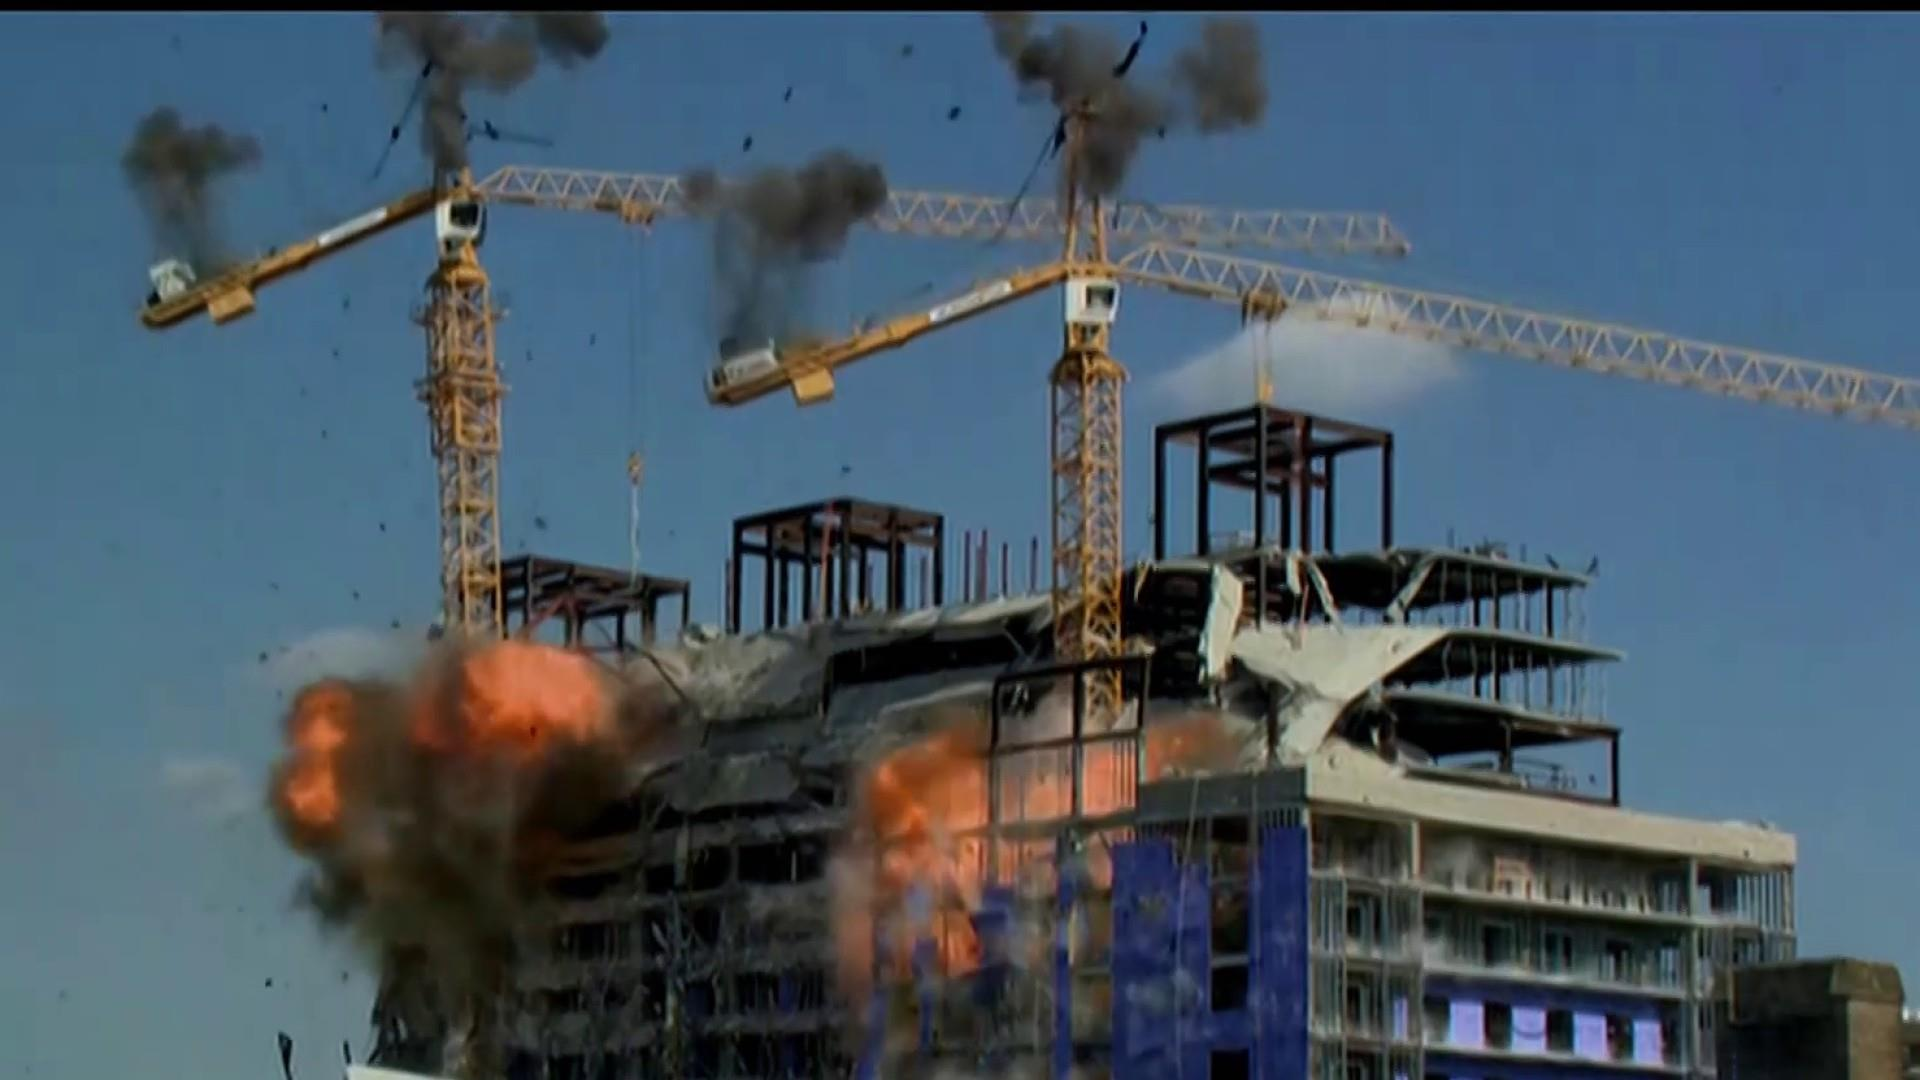 Controlled explosion brings down cranes at New Orleans hotel collapse site